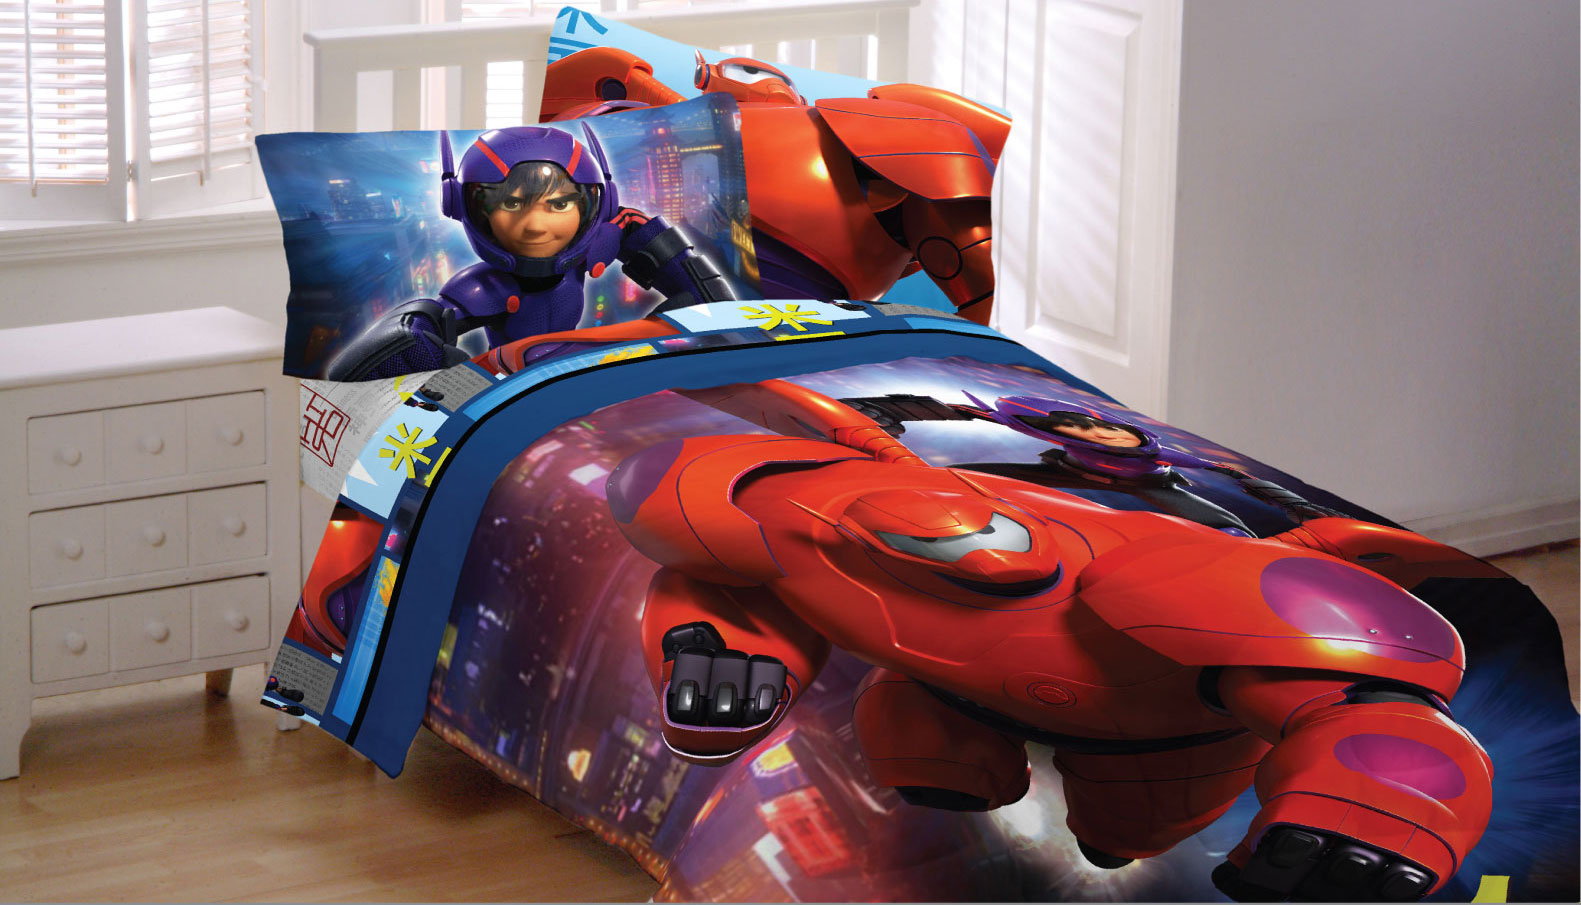 Disney Big Hero 6 Full Bedding Set - 5pc Baymax Robot Prodigy Comforter and Sheets MZL91E